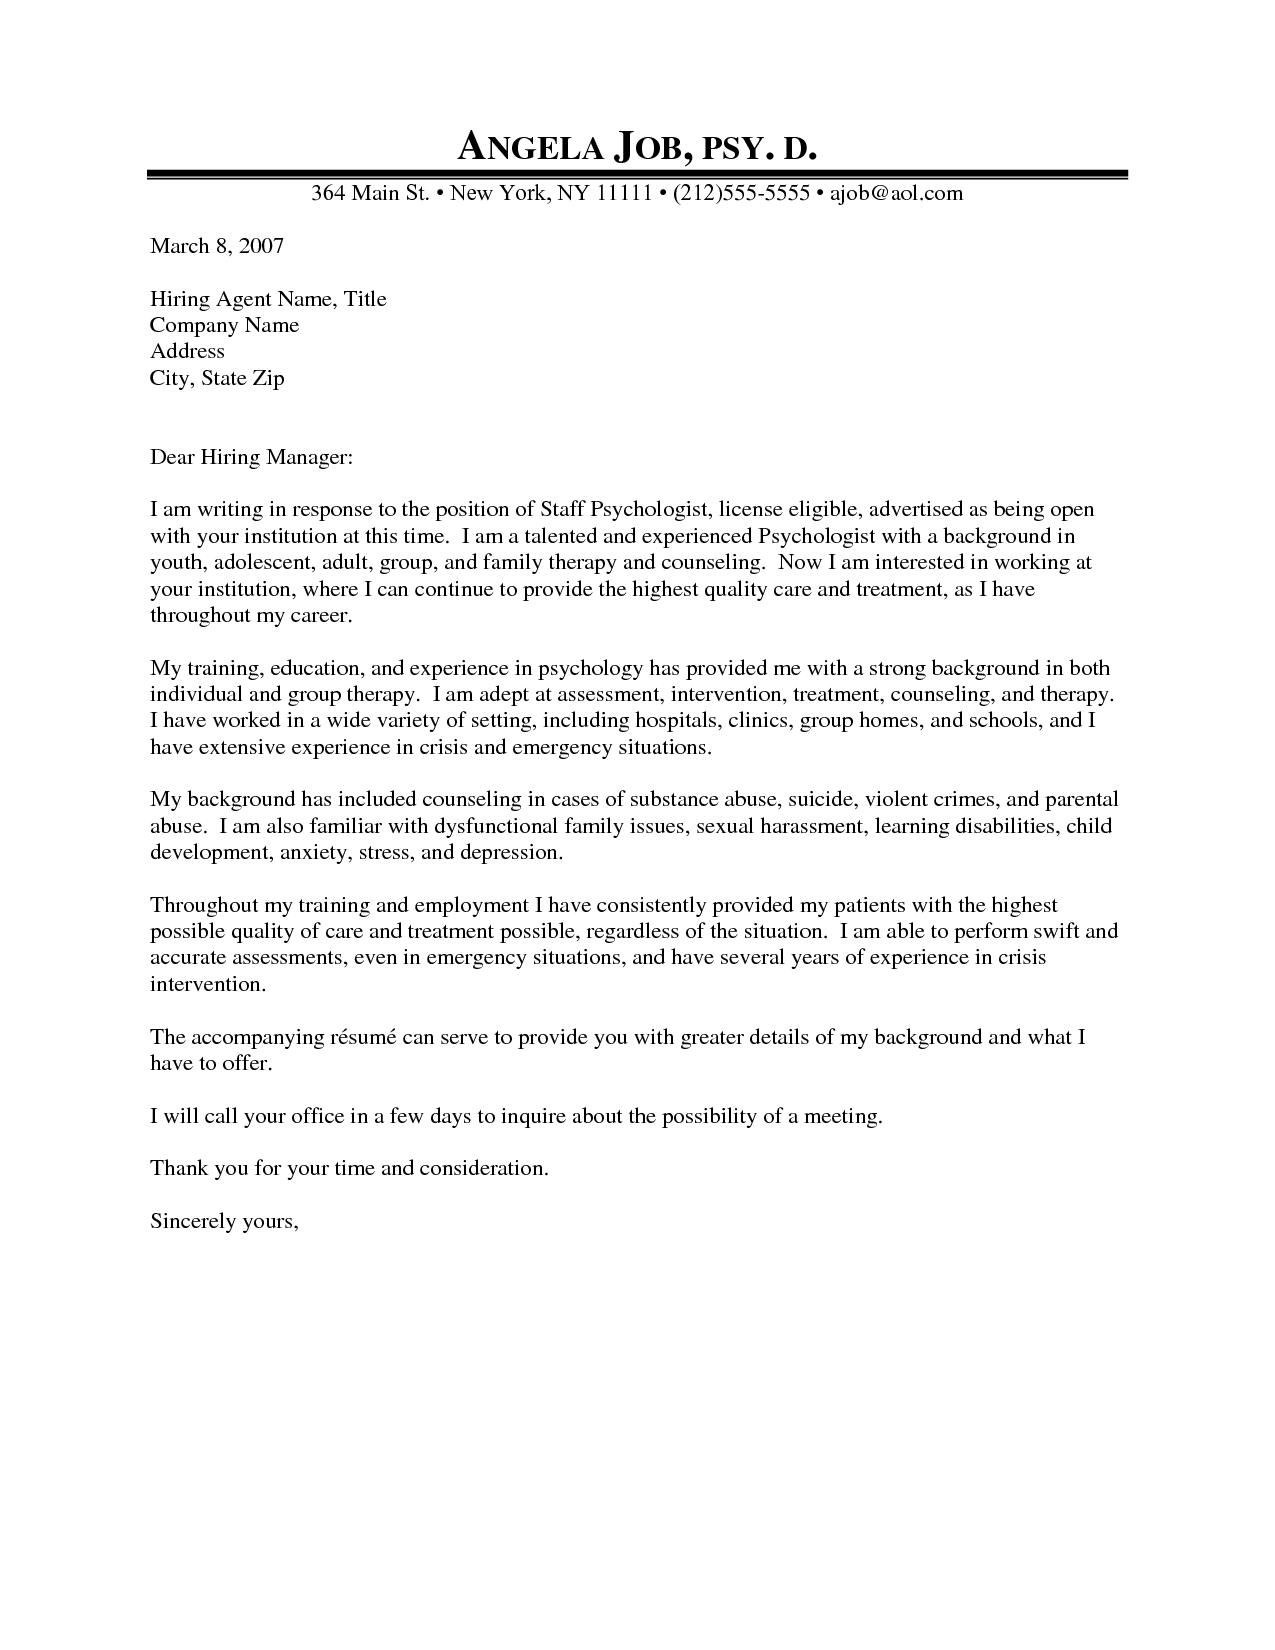 Professional Counseling Cover Letter | Psychologist Cover Letter Example